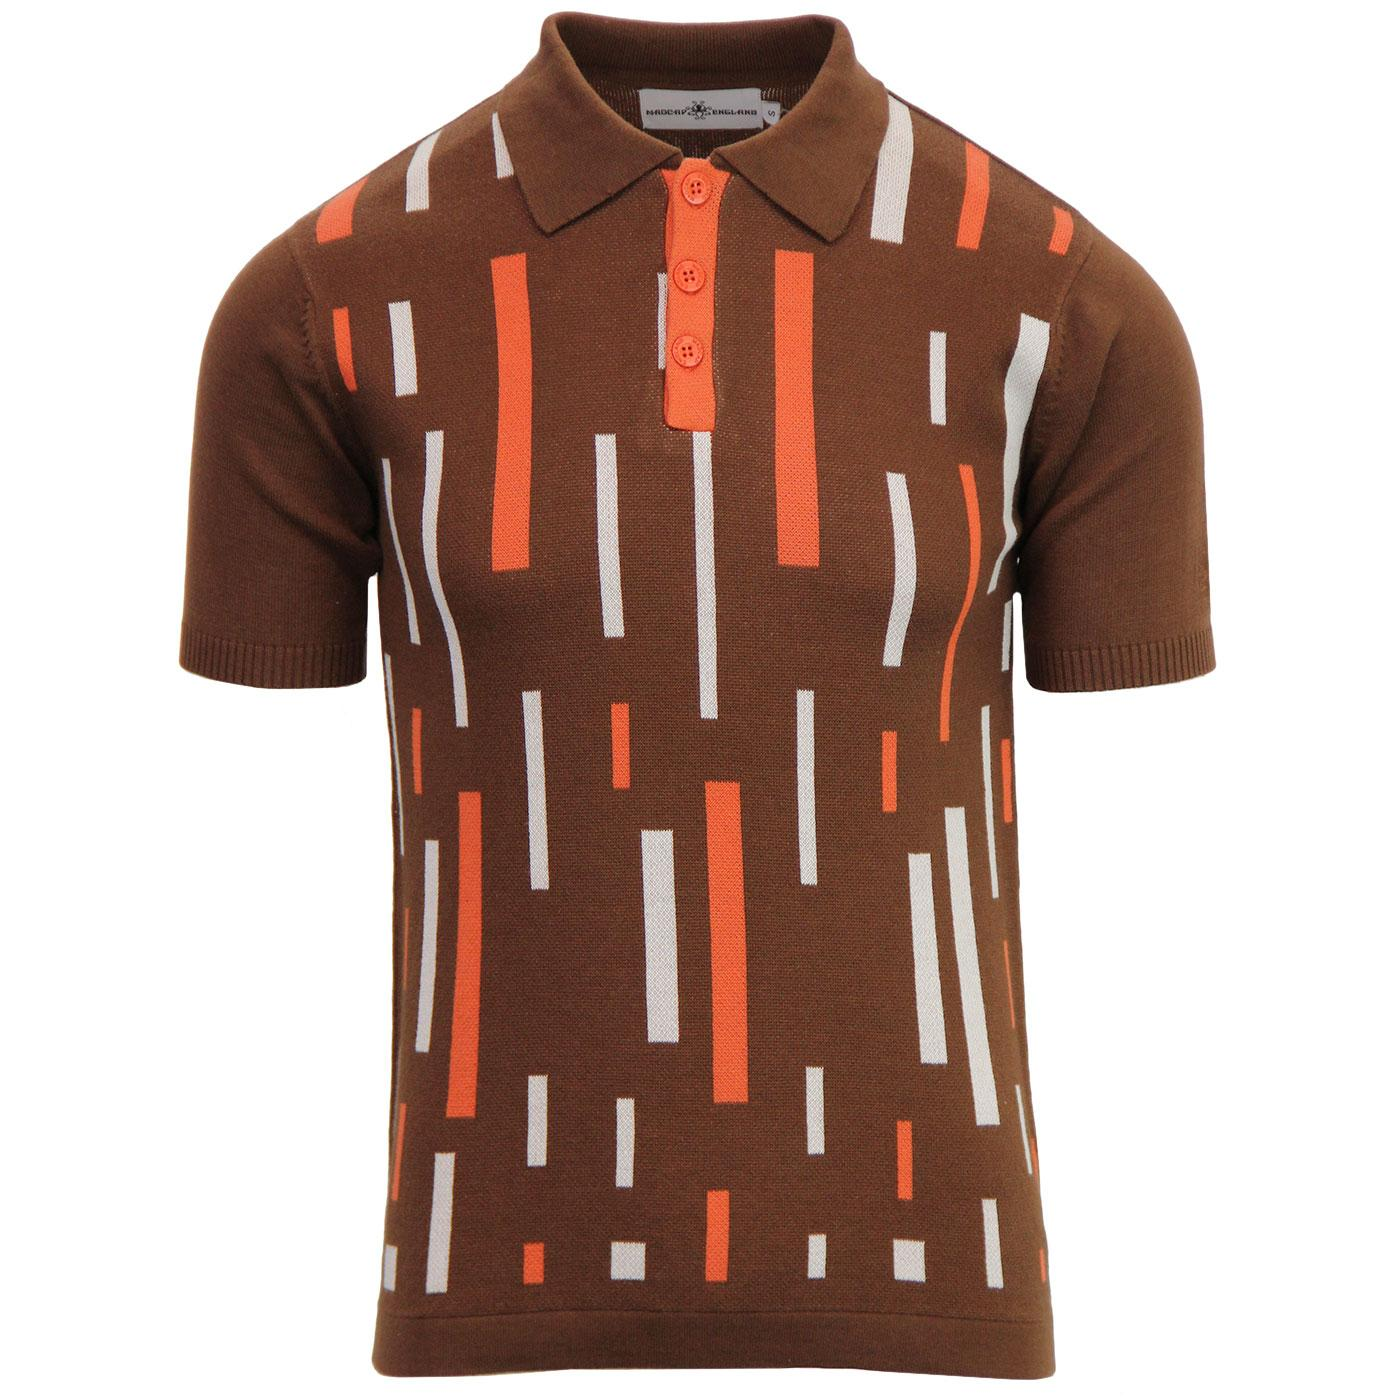 Eames MADCAP ENGLAND Mod Colour Block Polo (Bison)